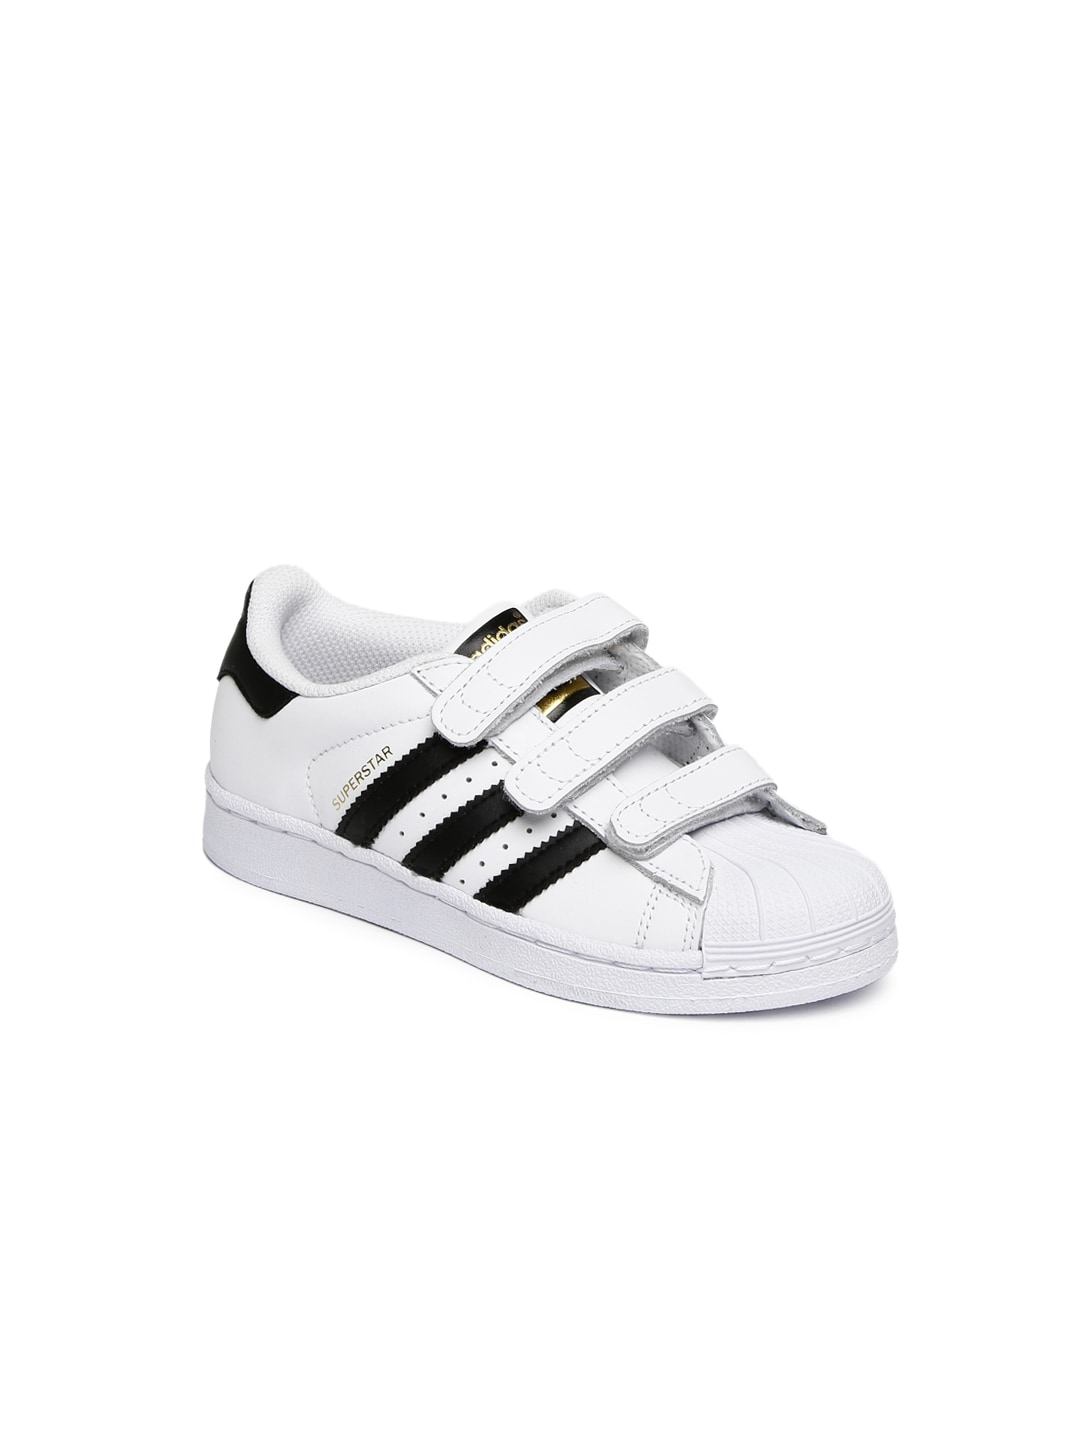 Adidas David Beckham Tights Casual Shoes - Buy Adidas David Beckham Tights  Casual Shoes online in India 652f9fd53